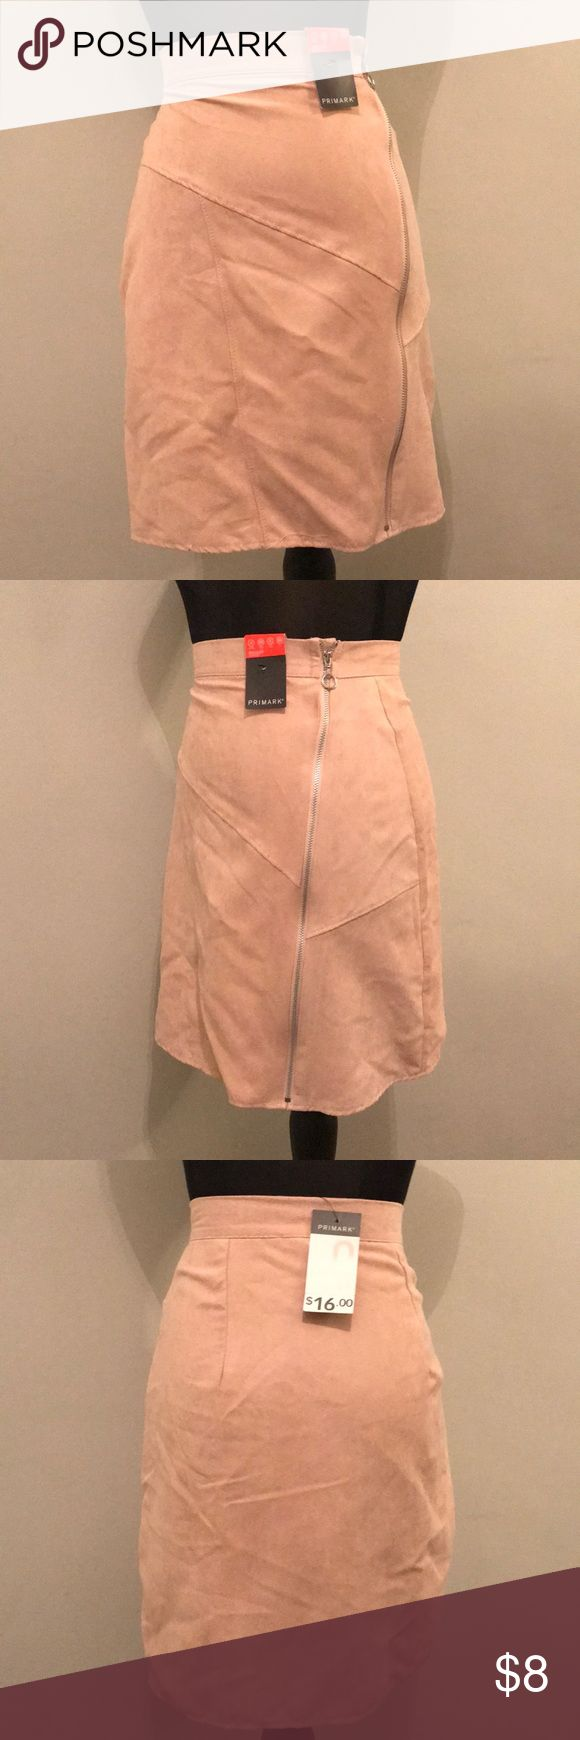 Nude high waisted mini skirt. Brand new w/ tags Nude high waisted mini skirt. brand new, never worn with tags ! primark Skirts Mini